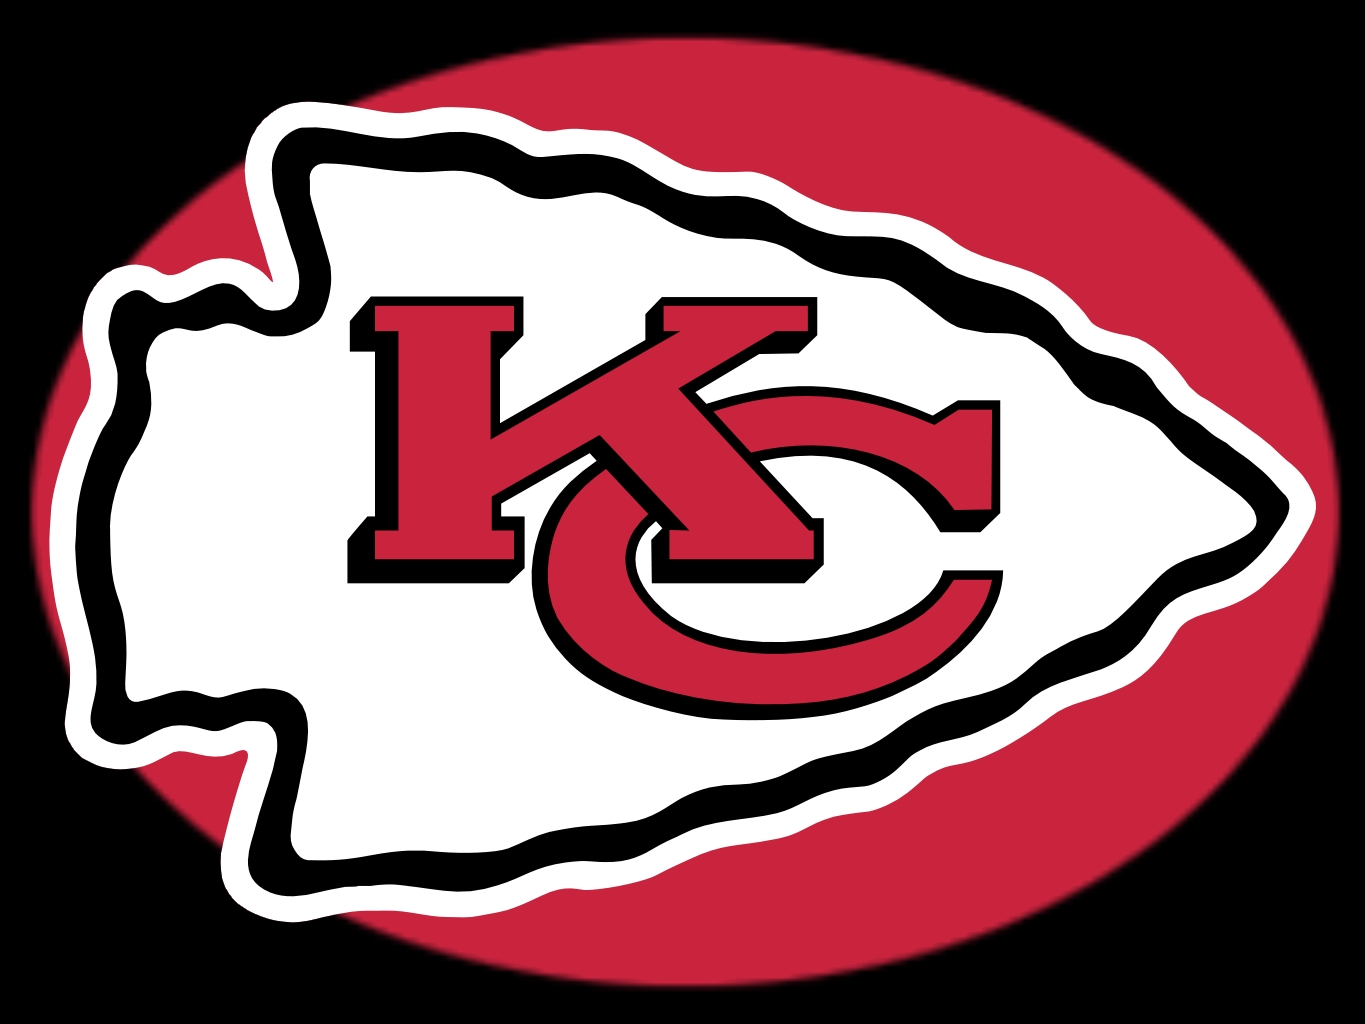 kansas city chiefs logo - photo #6